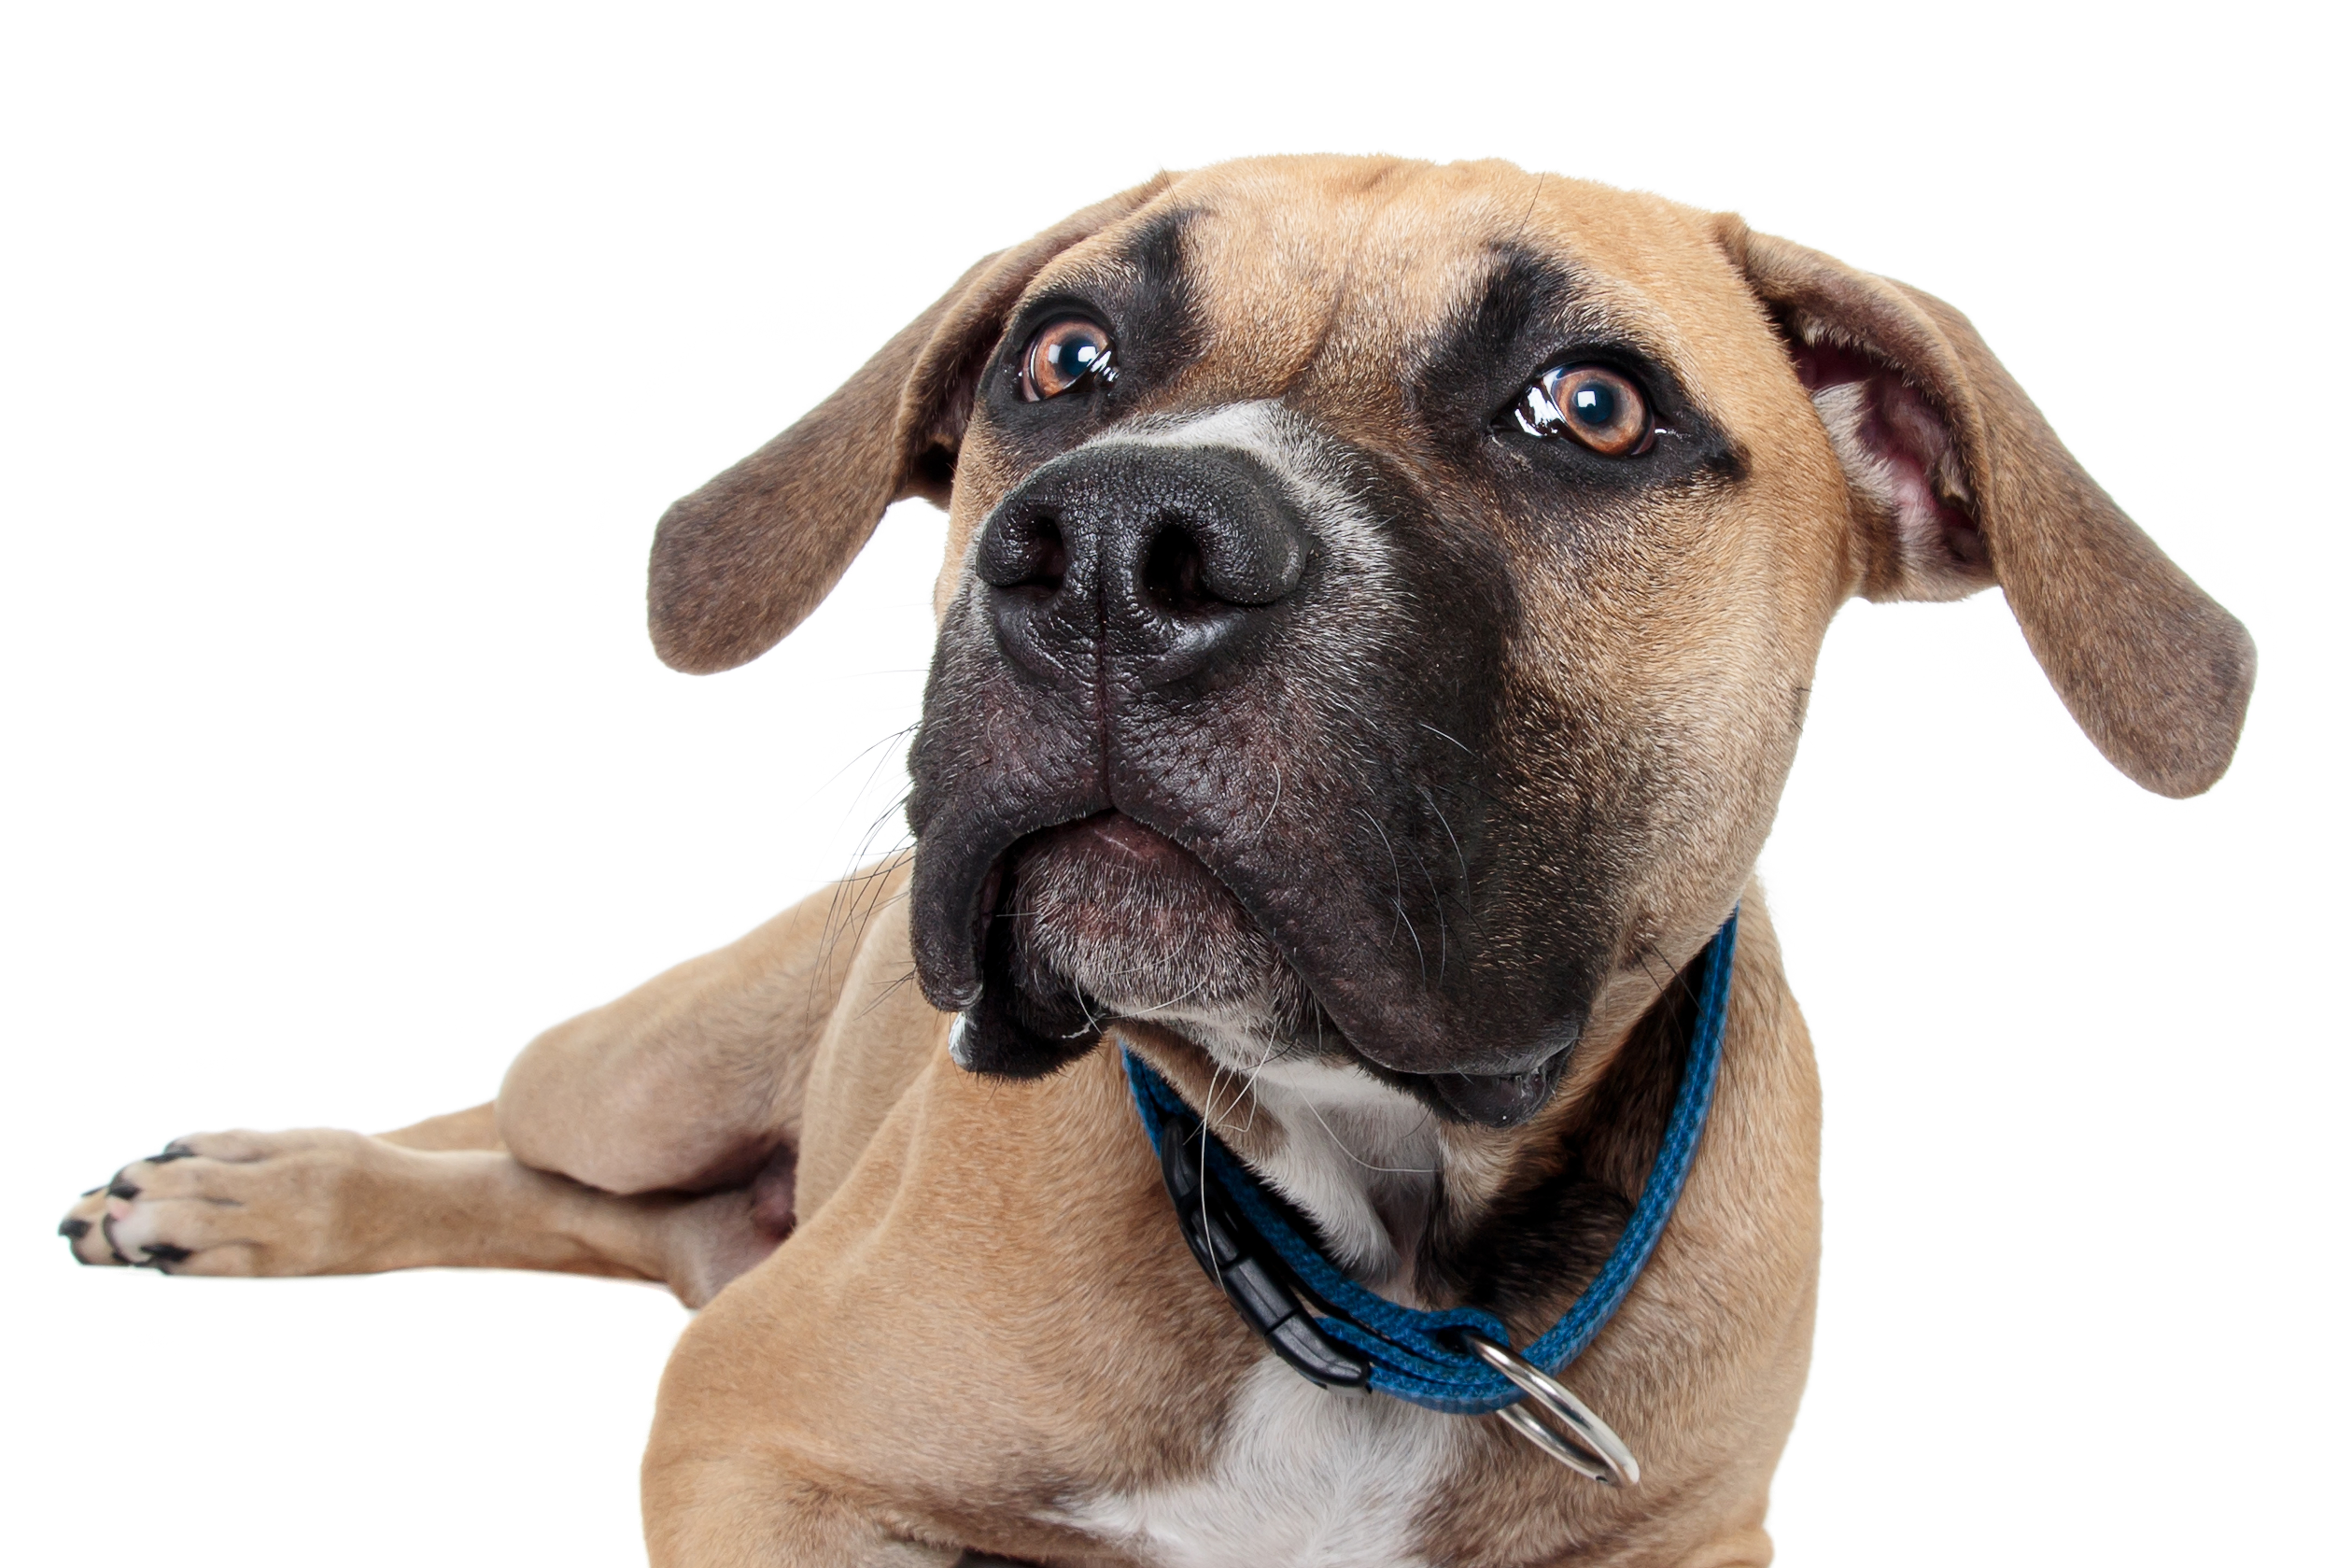 Staffy Bull Bullmastiff Mixed Dog Breed Pictures